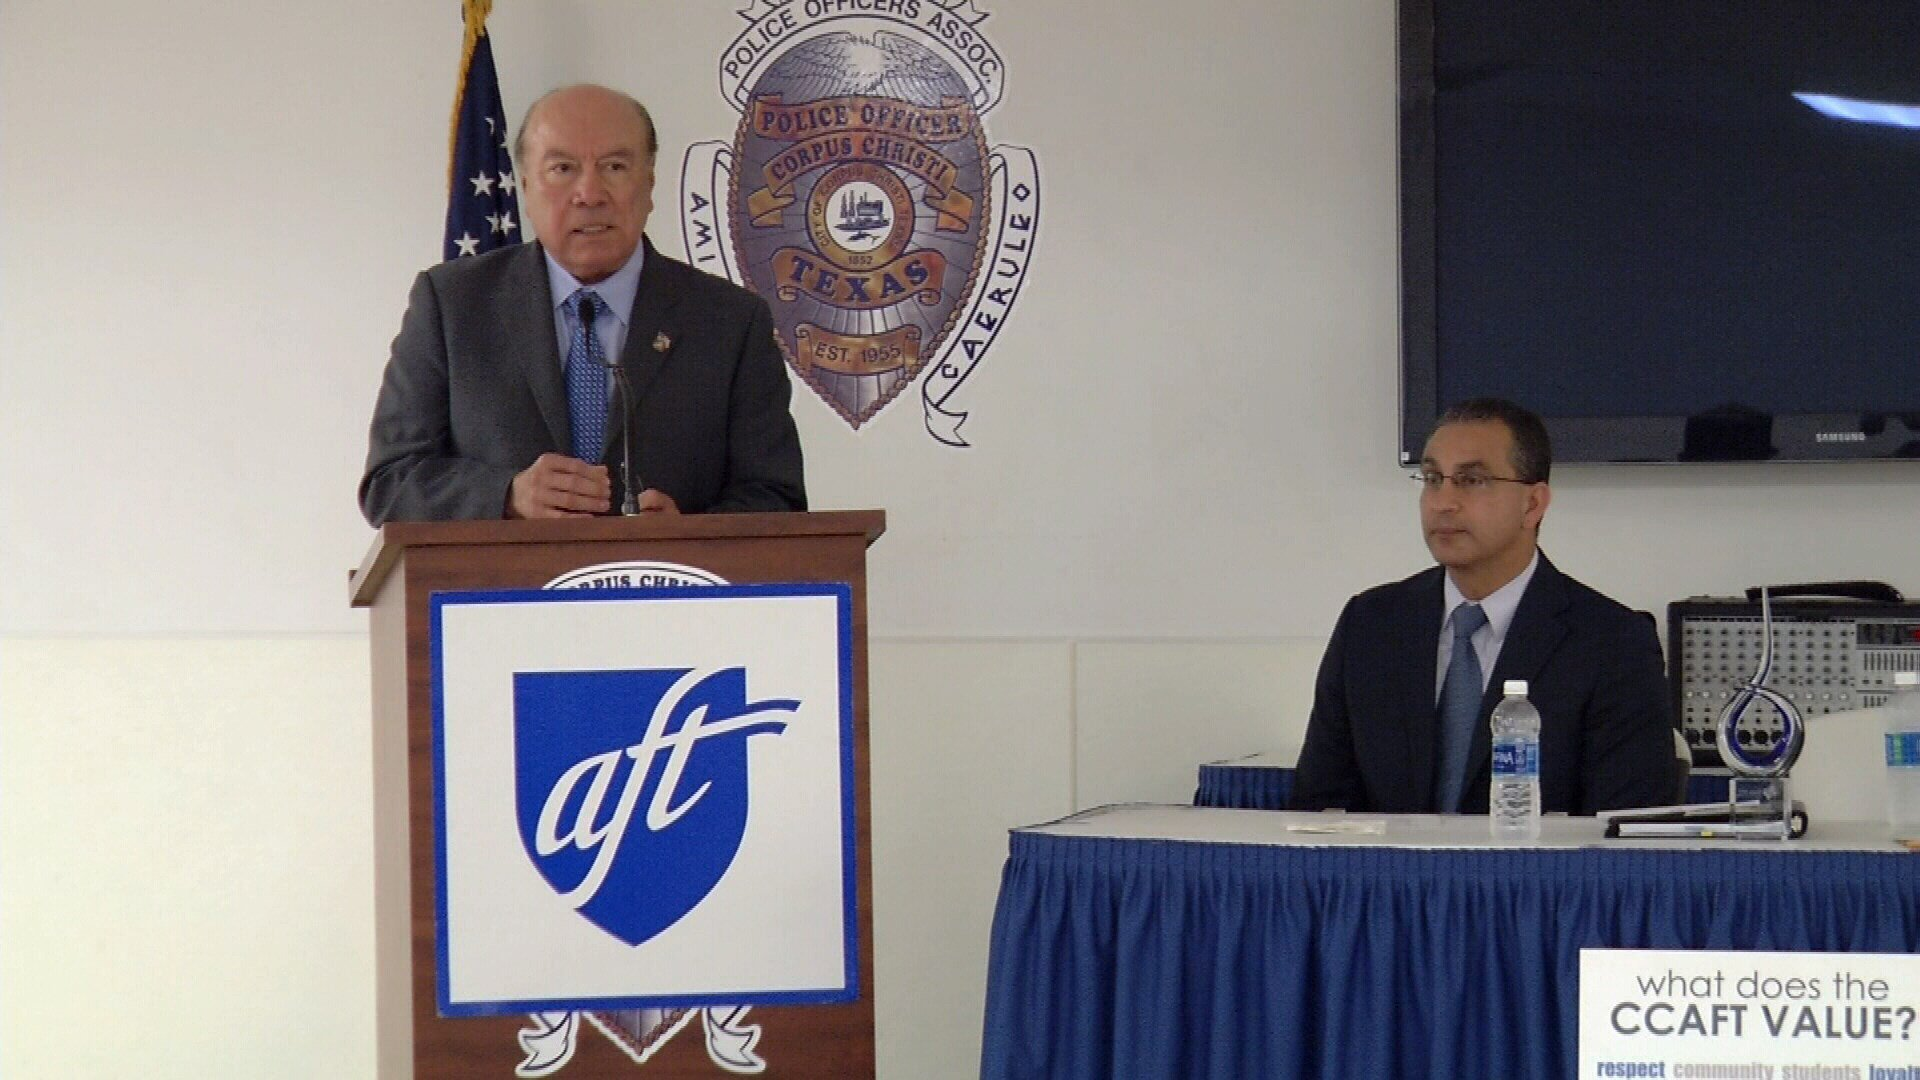 Sen. Juan 'Chuy' Hinojosa and Rep. Abel Herrero spoke to the American Federation of Teachers about the education items on the session agenda.